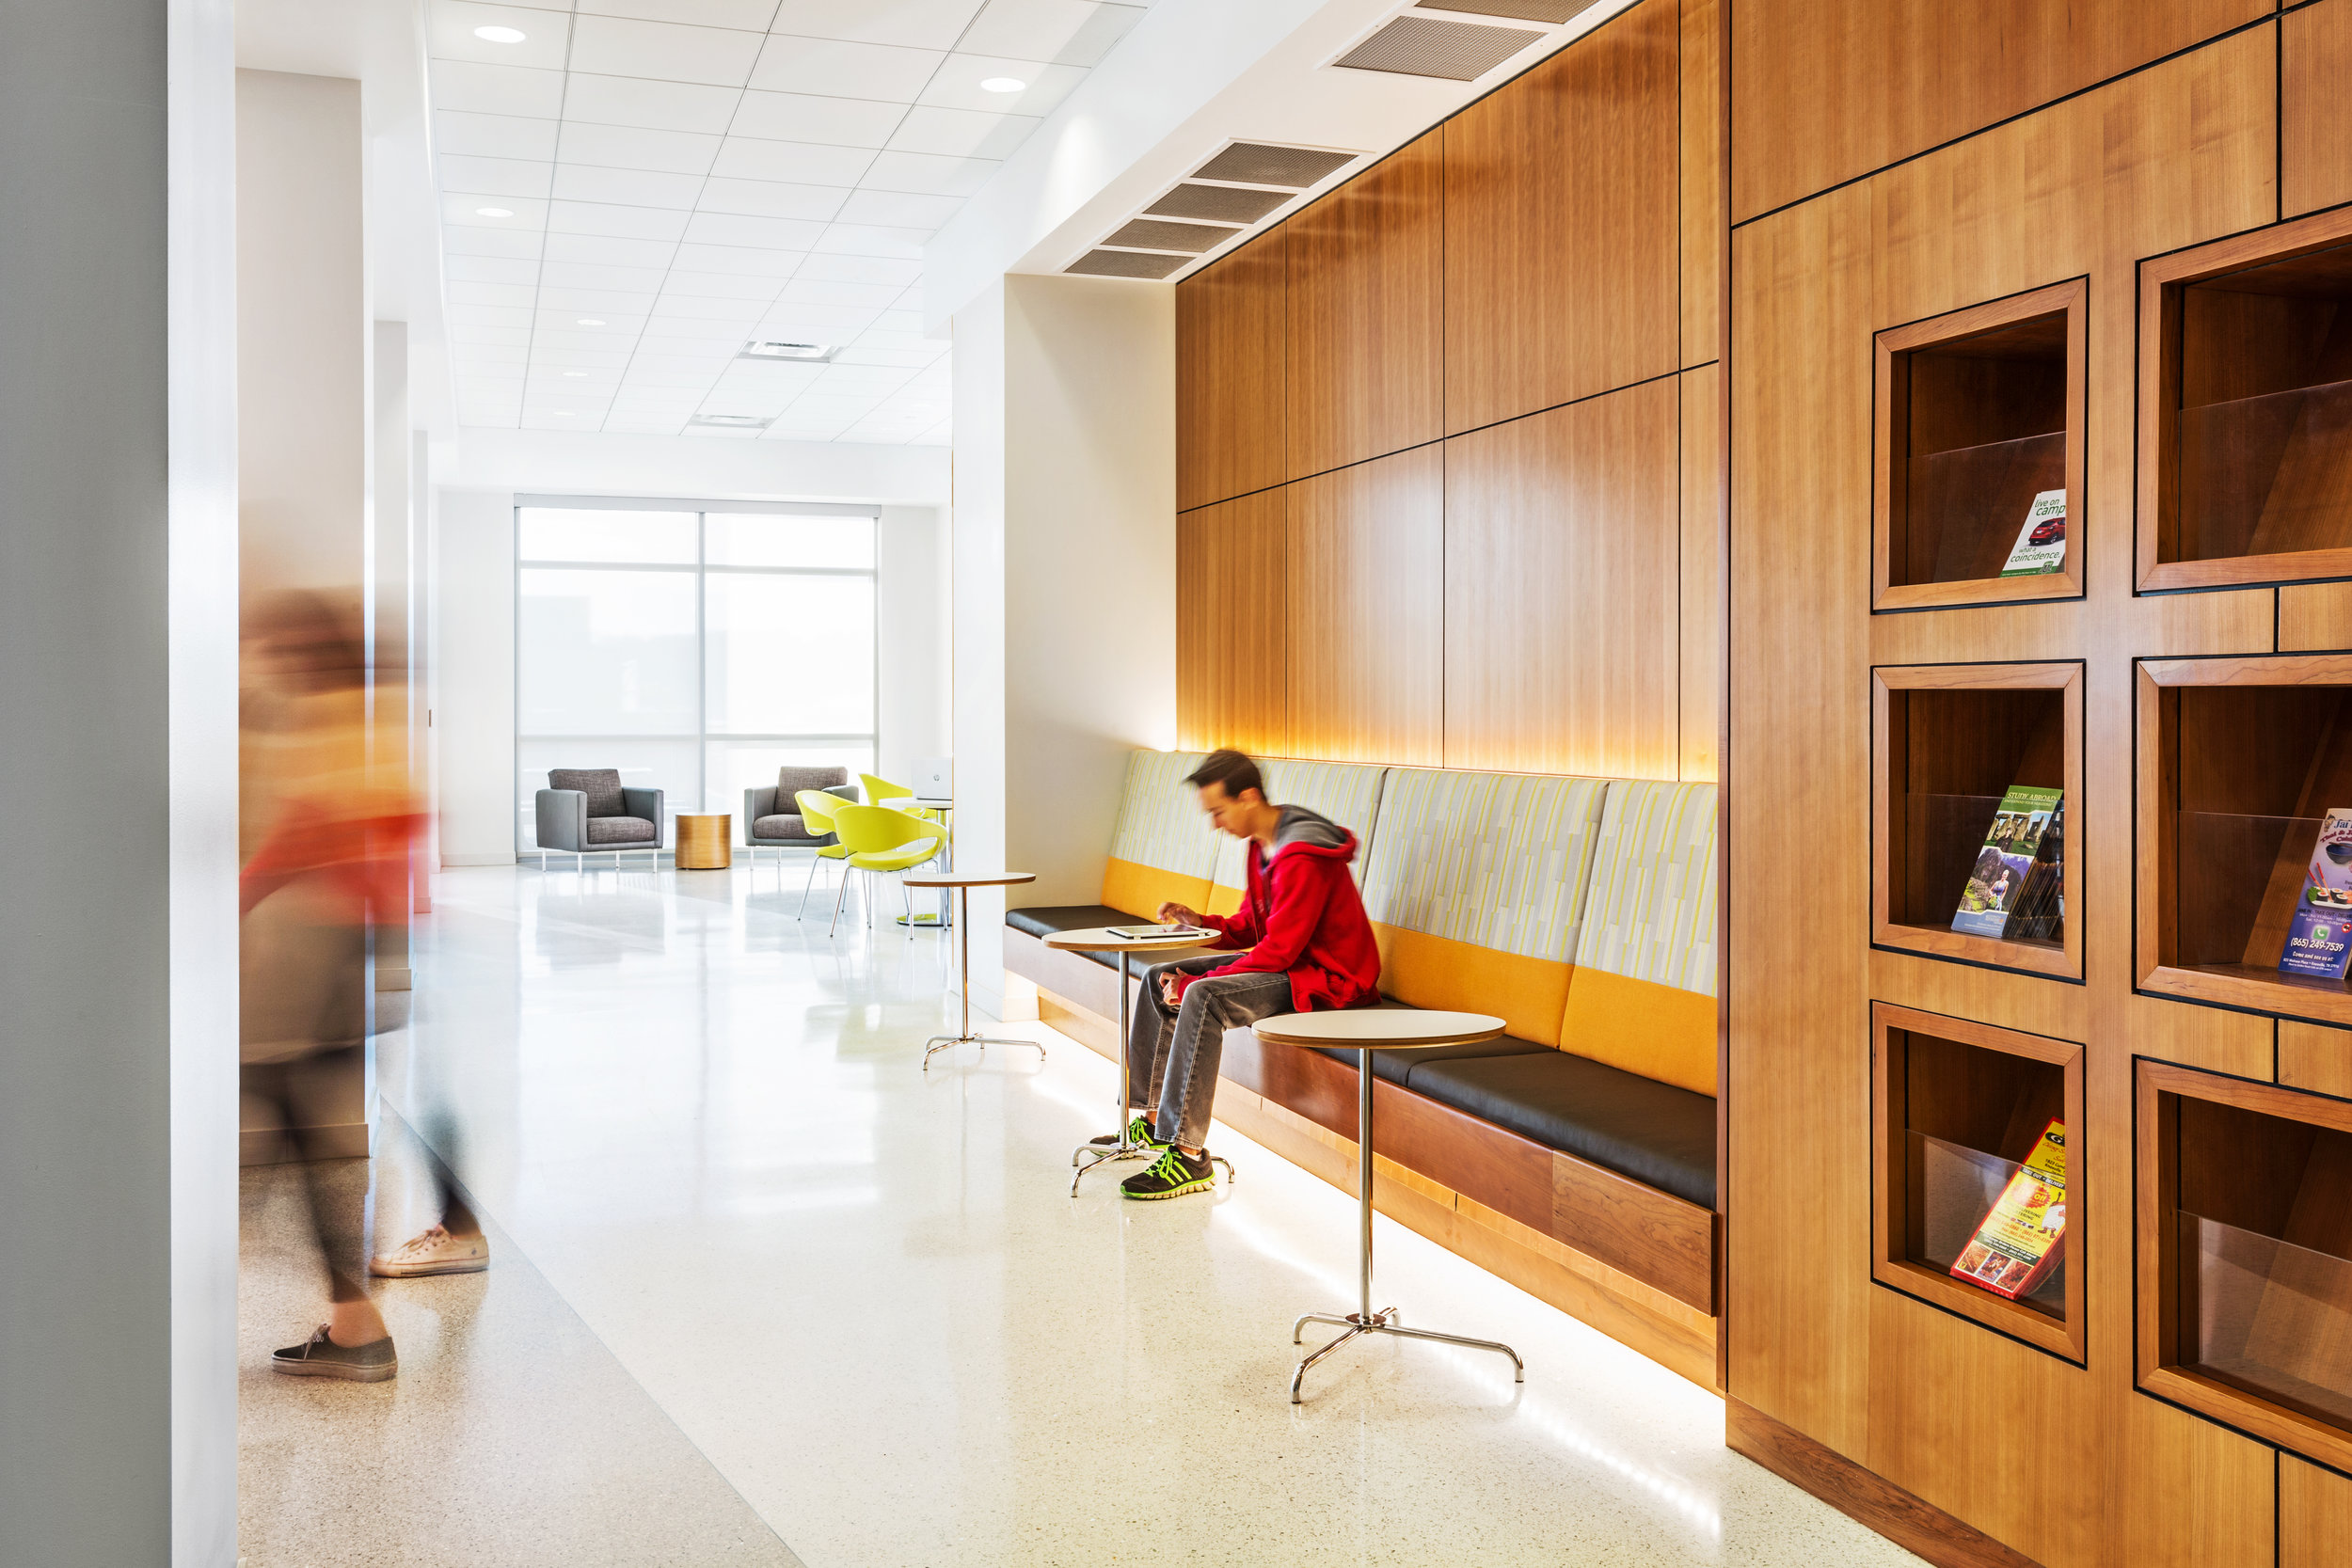 University_Of_Tennessee_Fred_Brown_Residence_Hall_Modern_Interiors_Dorm_Life_Lauderdale_Design_Group